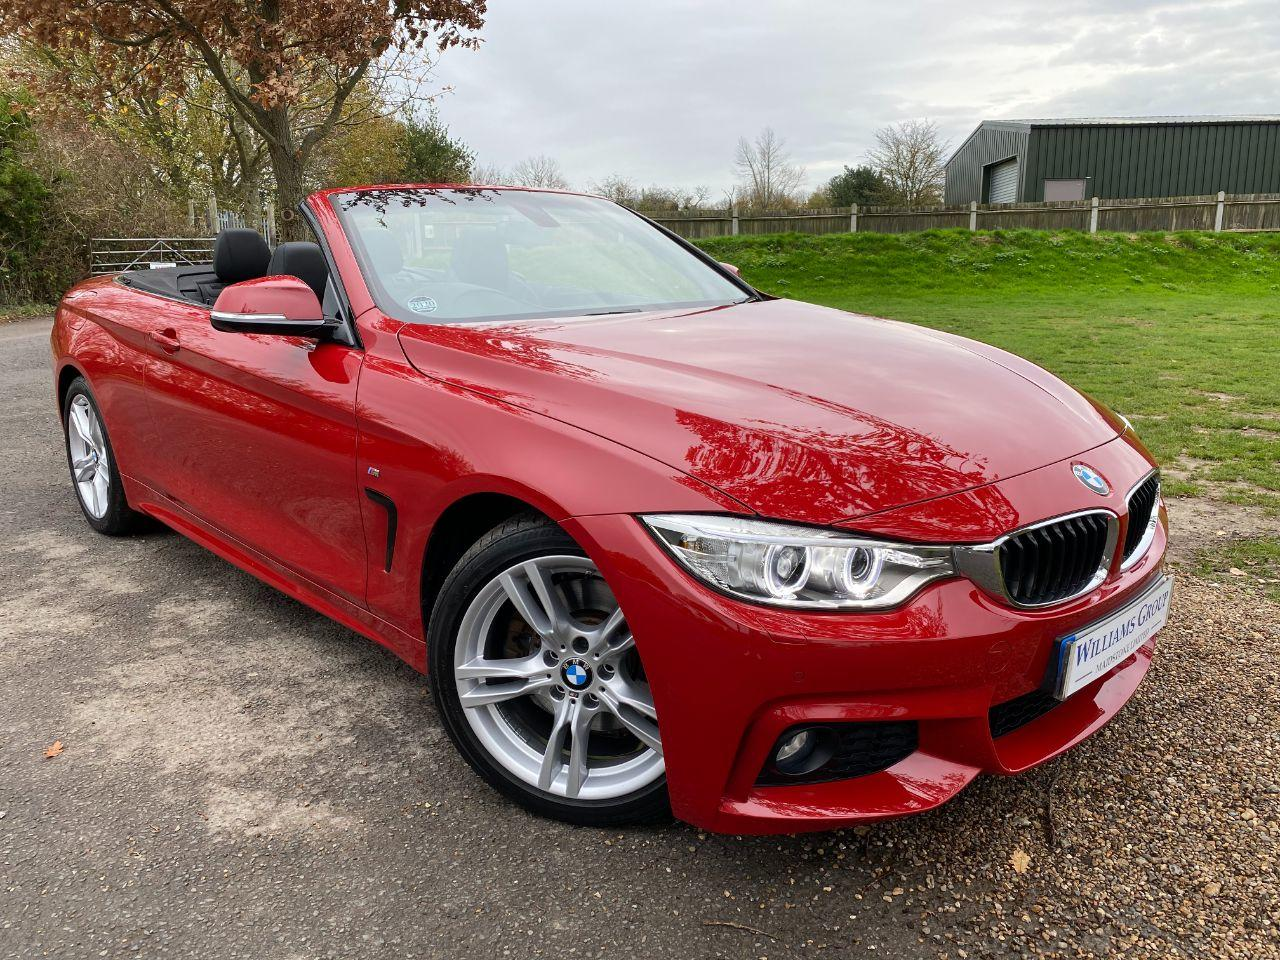 BMW 4 Series 2.0 430i M Sport 2dr Auto [Professional Media] (Low Miles! Heated Seats! +++) Convertible Petrol Melbourne Red Metallic